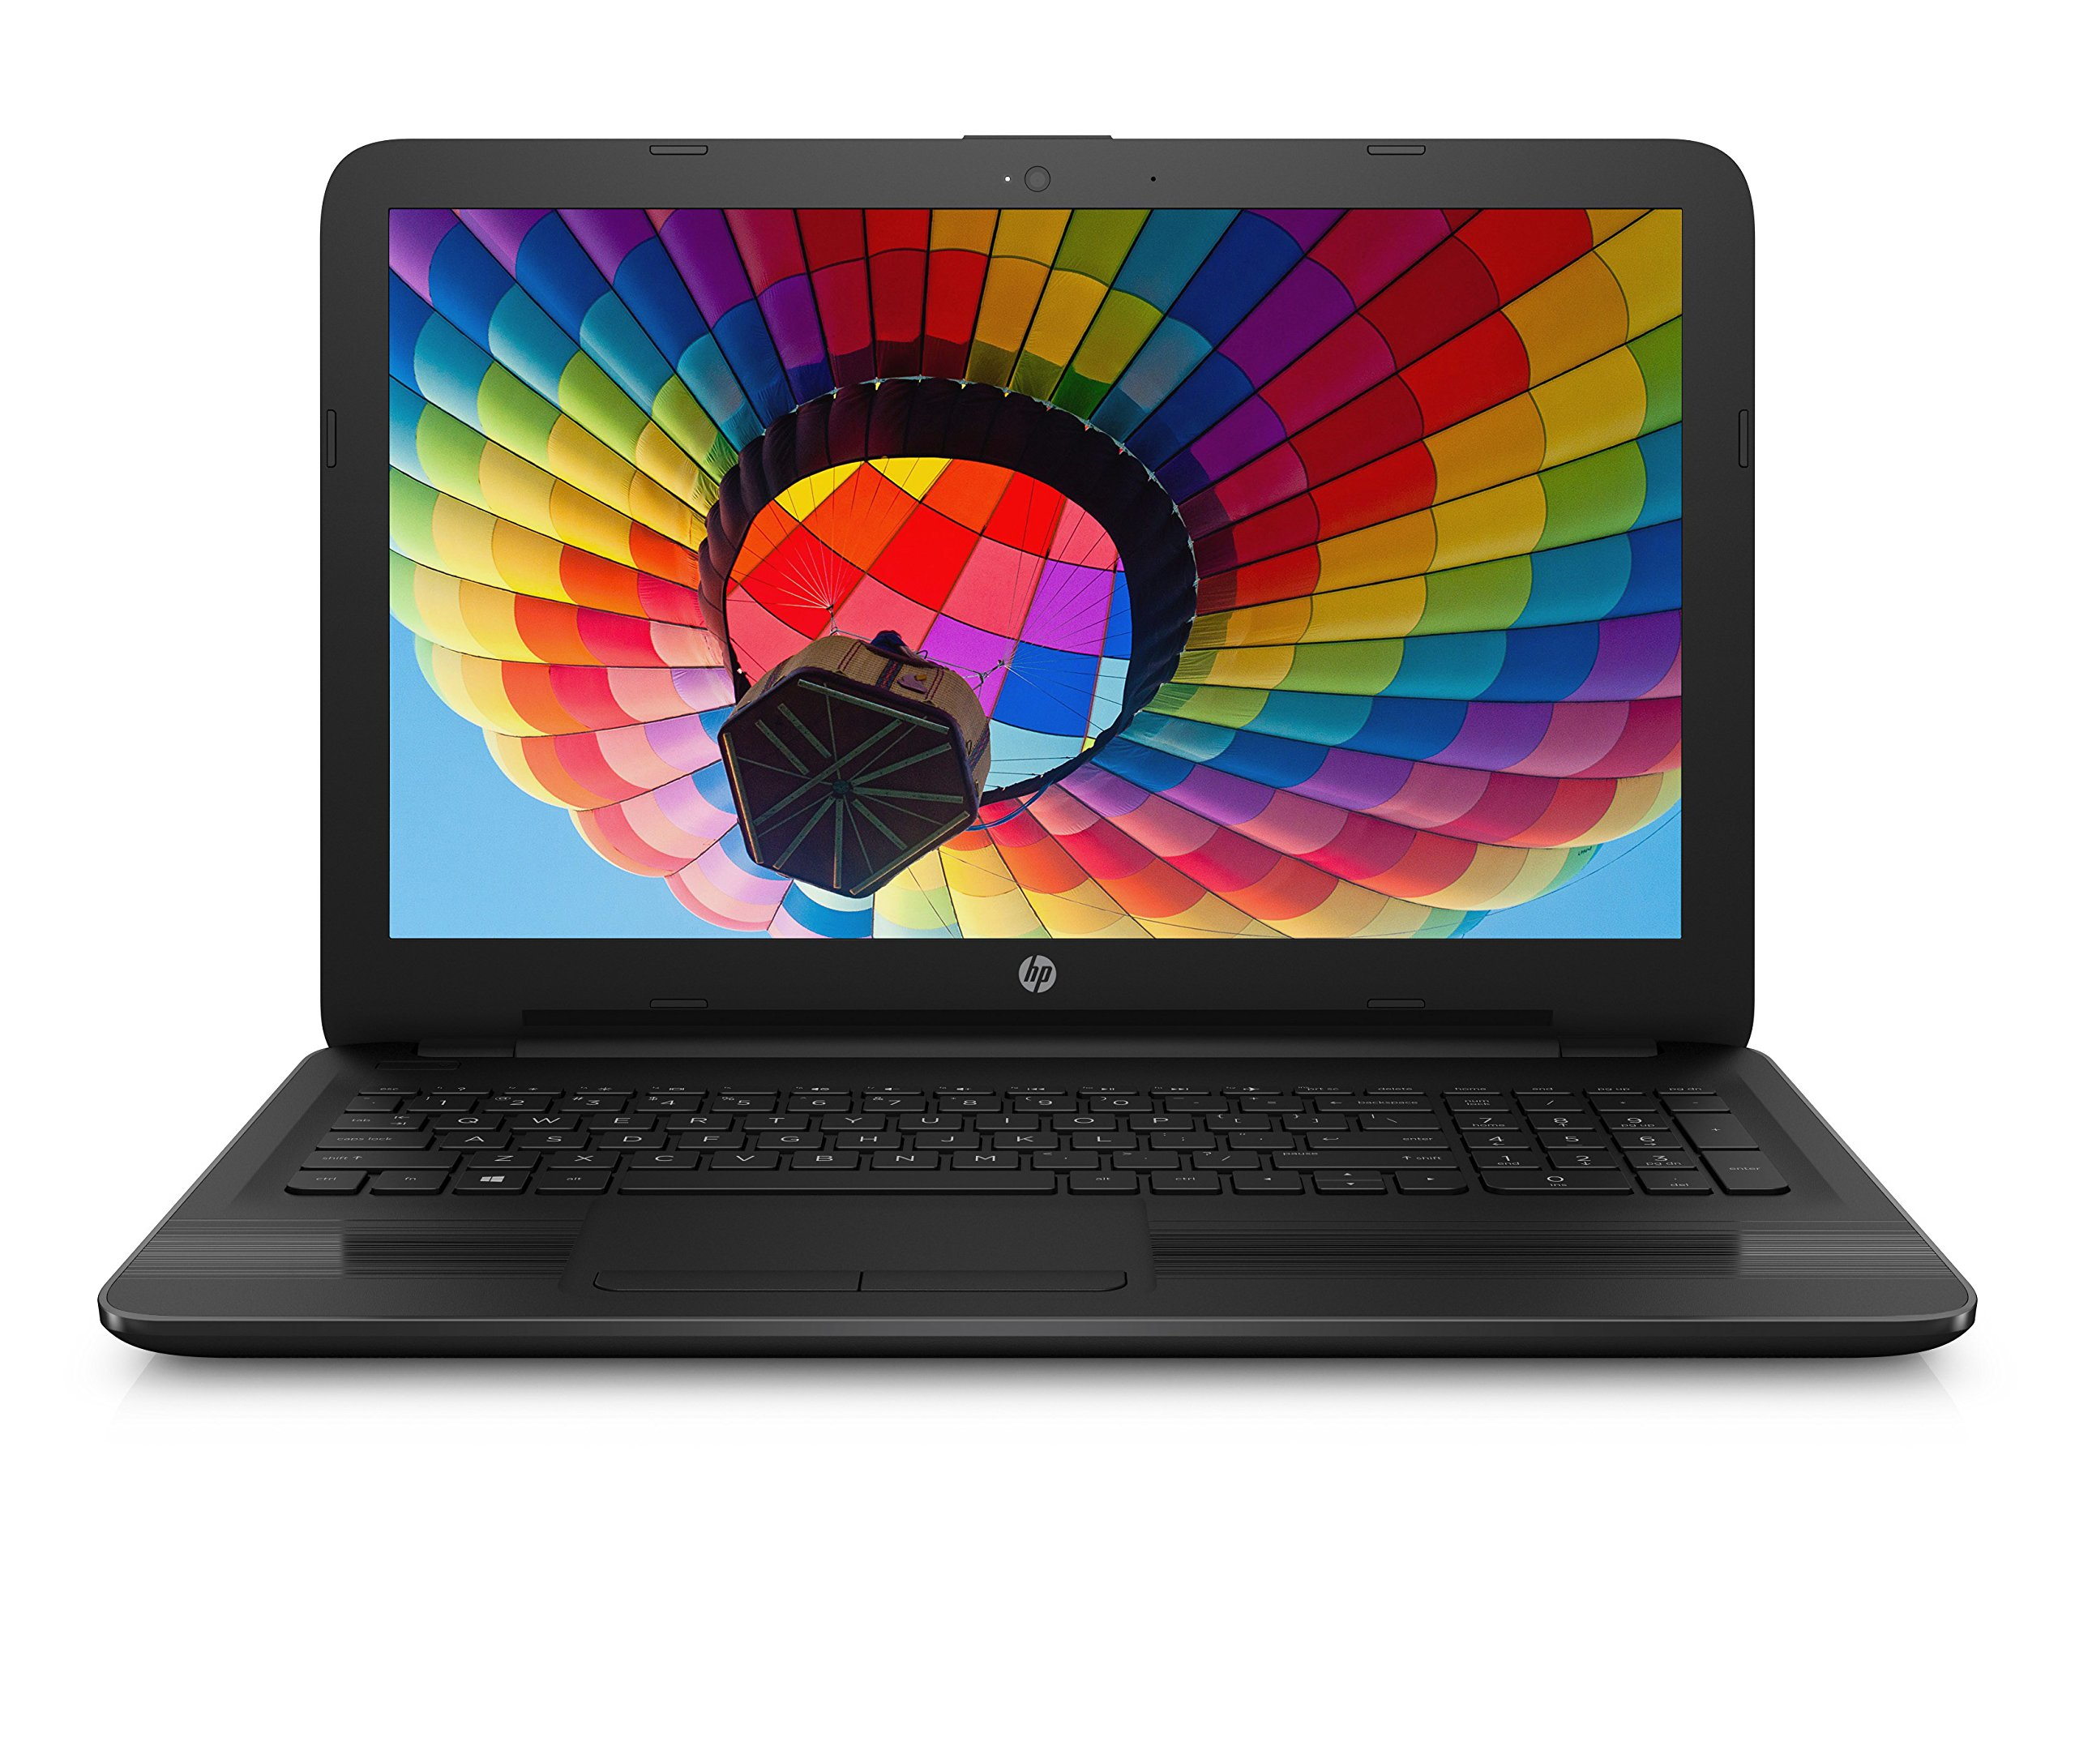 New HP Notebook Laptop 15.6 HD Vibrant Display Quad Core AMD E2-7110 APU 1.8GHz 4GB RAM 500GB HDD DVD Windows 10 by HP